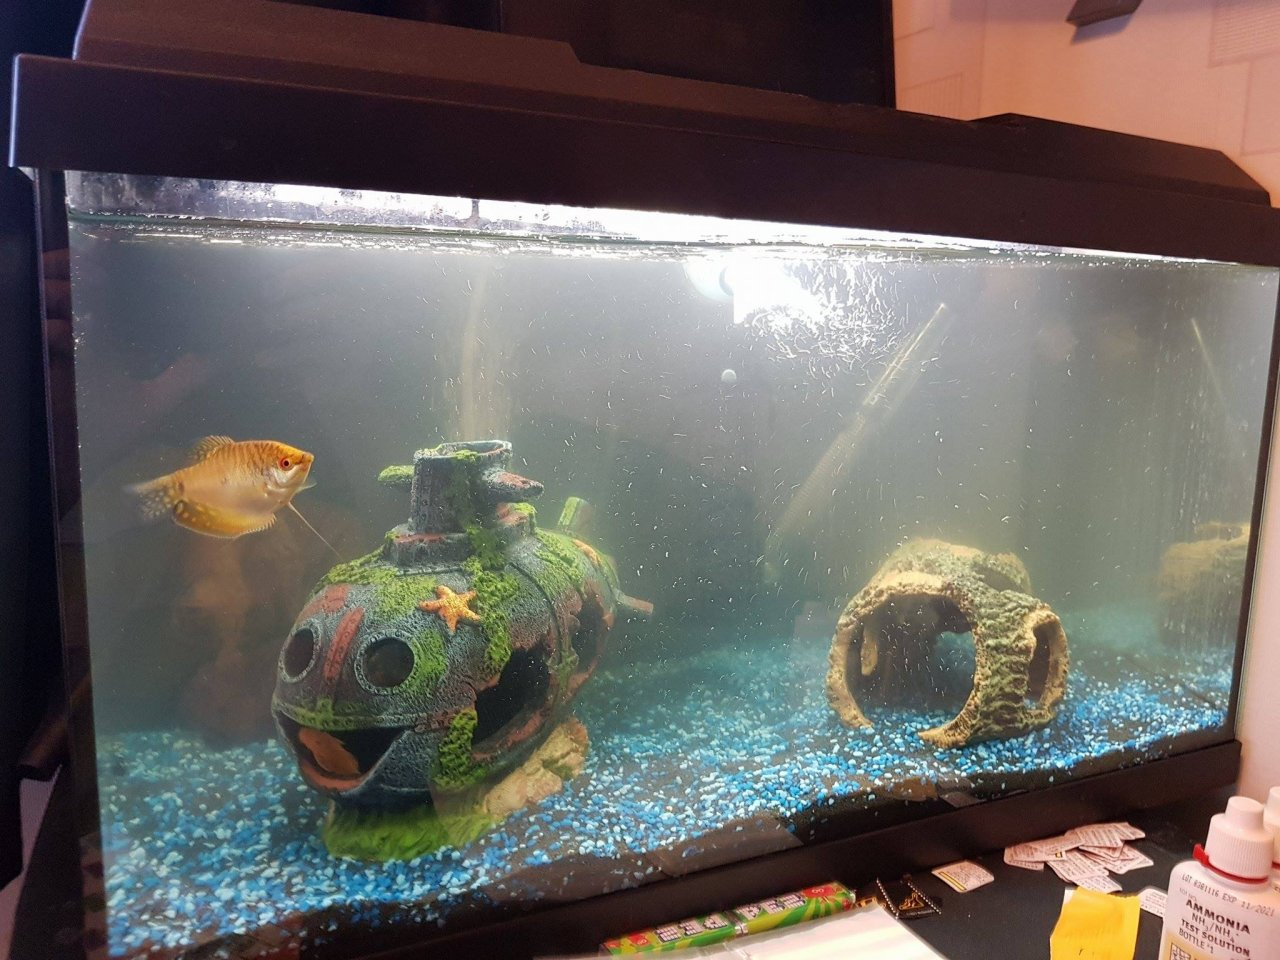 Freshwater aquarium fish help - Hello I Need Urgent Help I Had A Freshwater Aquarium That Was 22l And Had No Major Problems Decided To Upgrade As Was Getting Overcrowded And Have Had